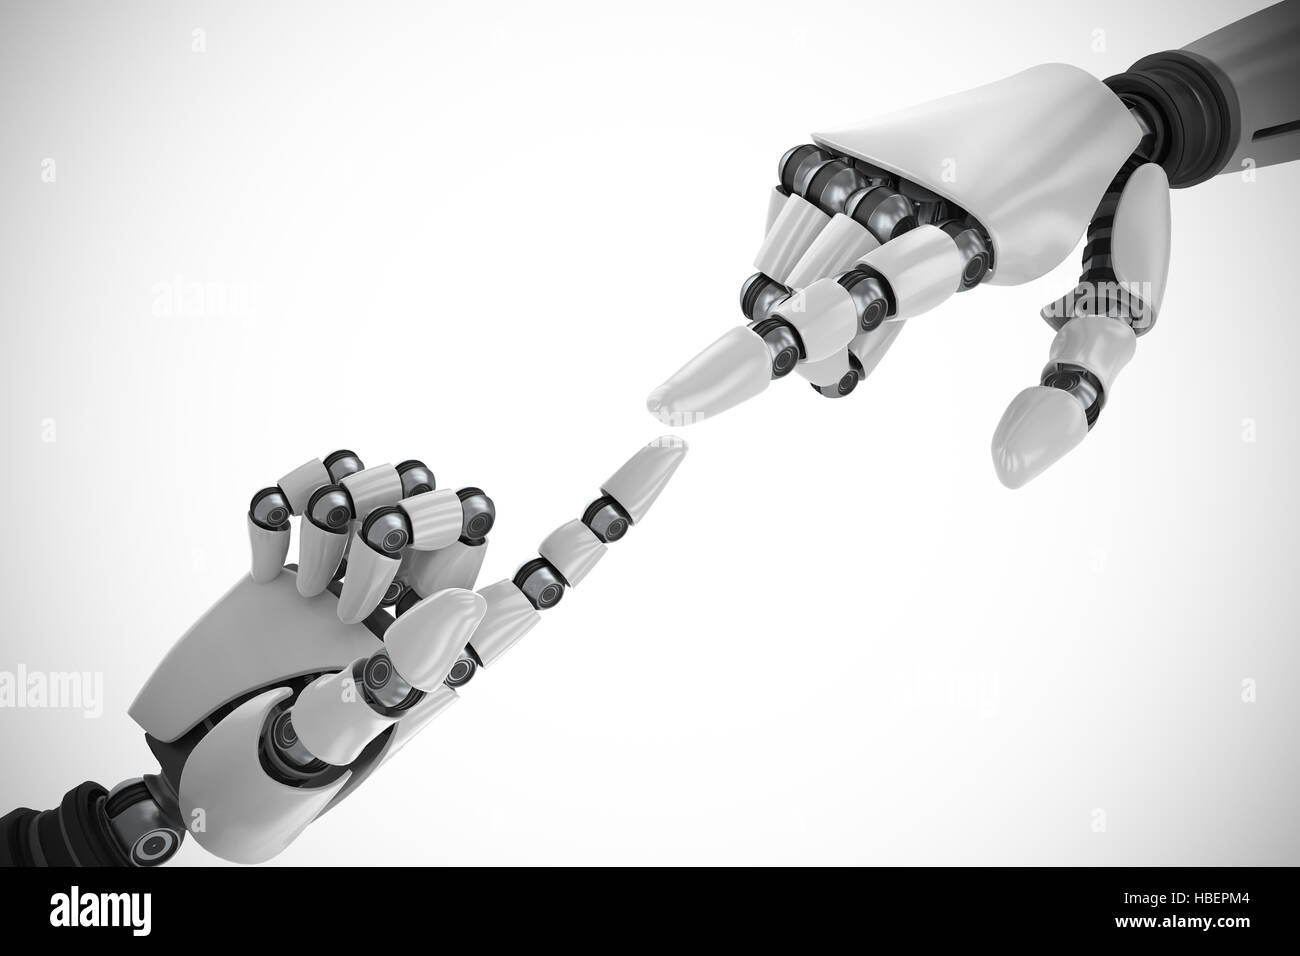 Composite image of white robot arm pointing at something - Stock Image